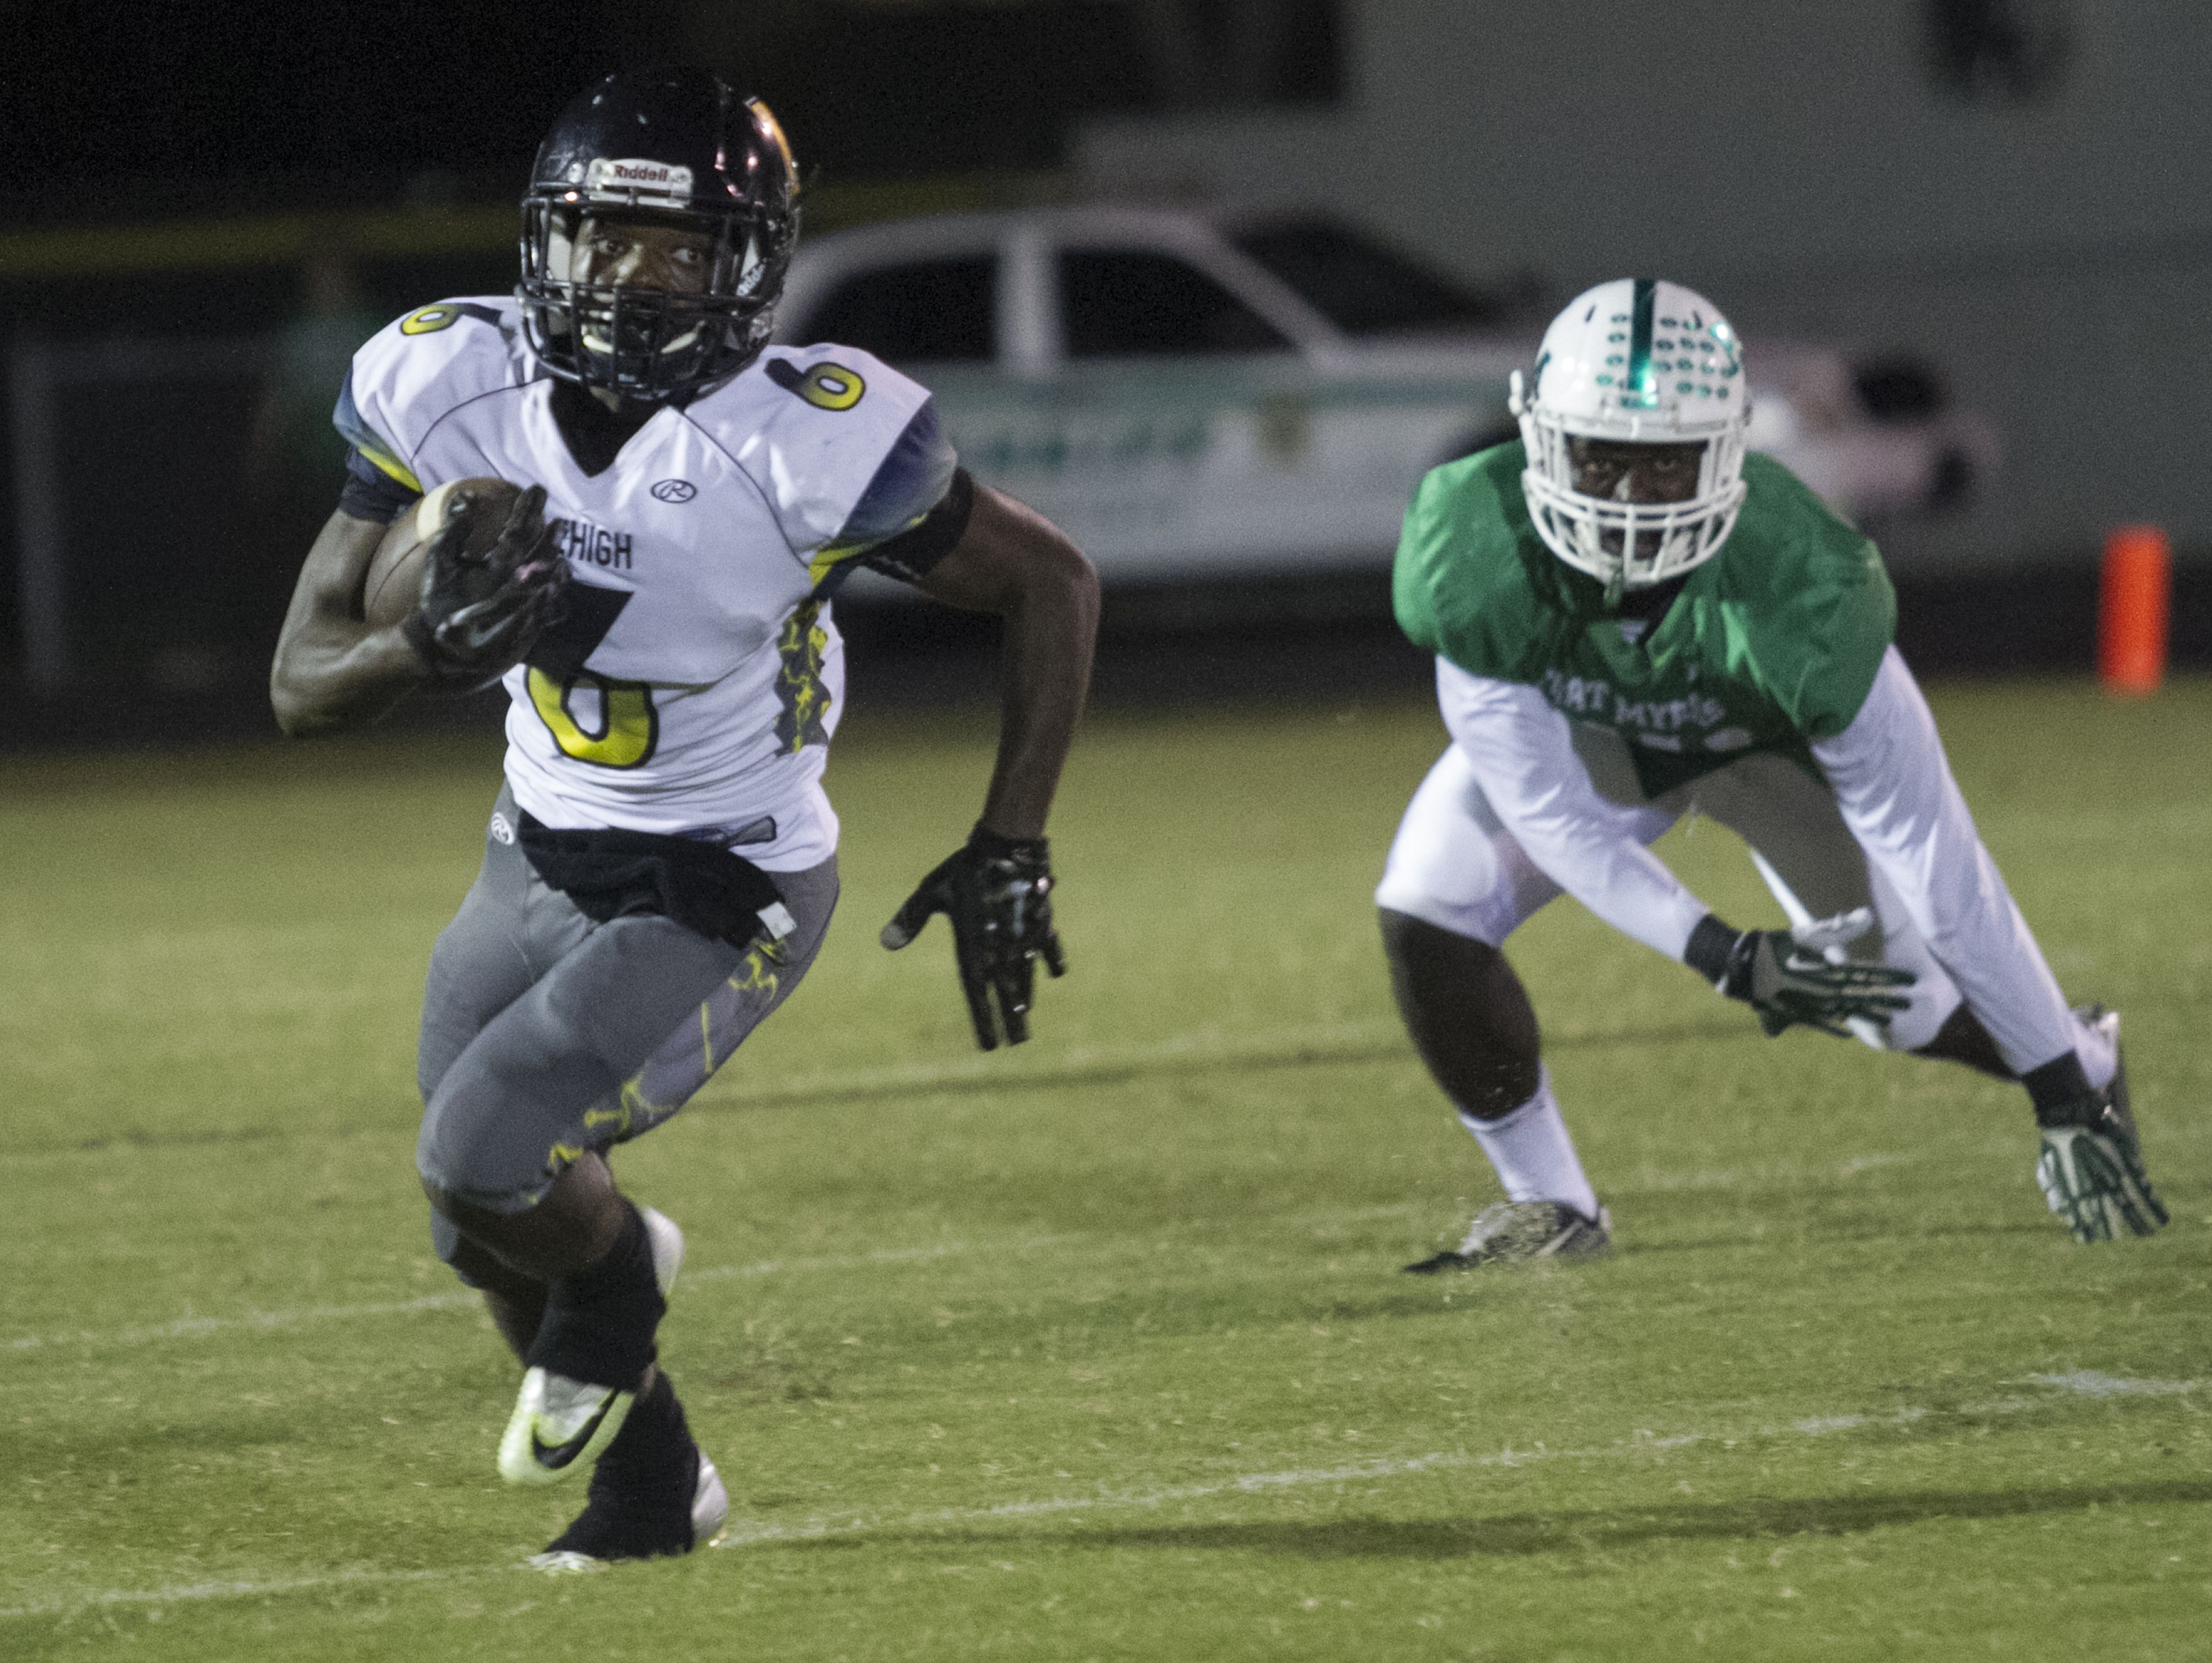 Lehigh's Jalane Nelson runs the ball for the Lightning on Friday night at Fort Myers High School.